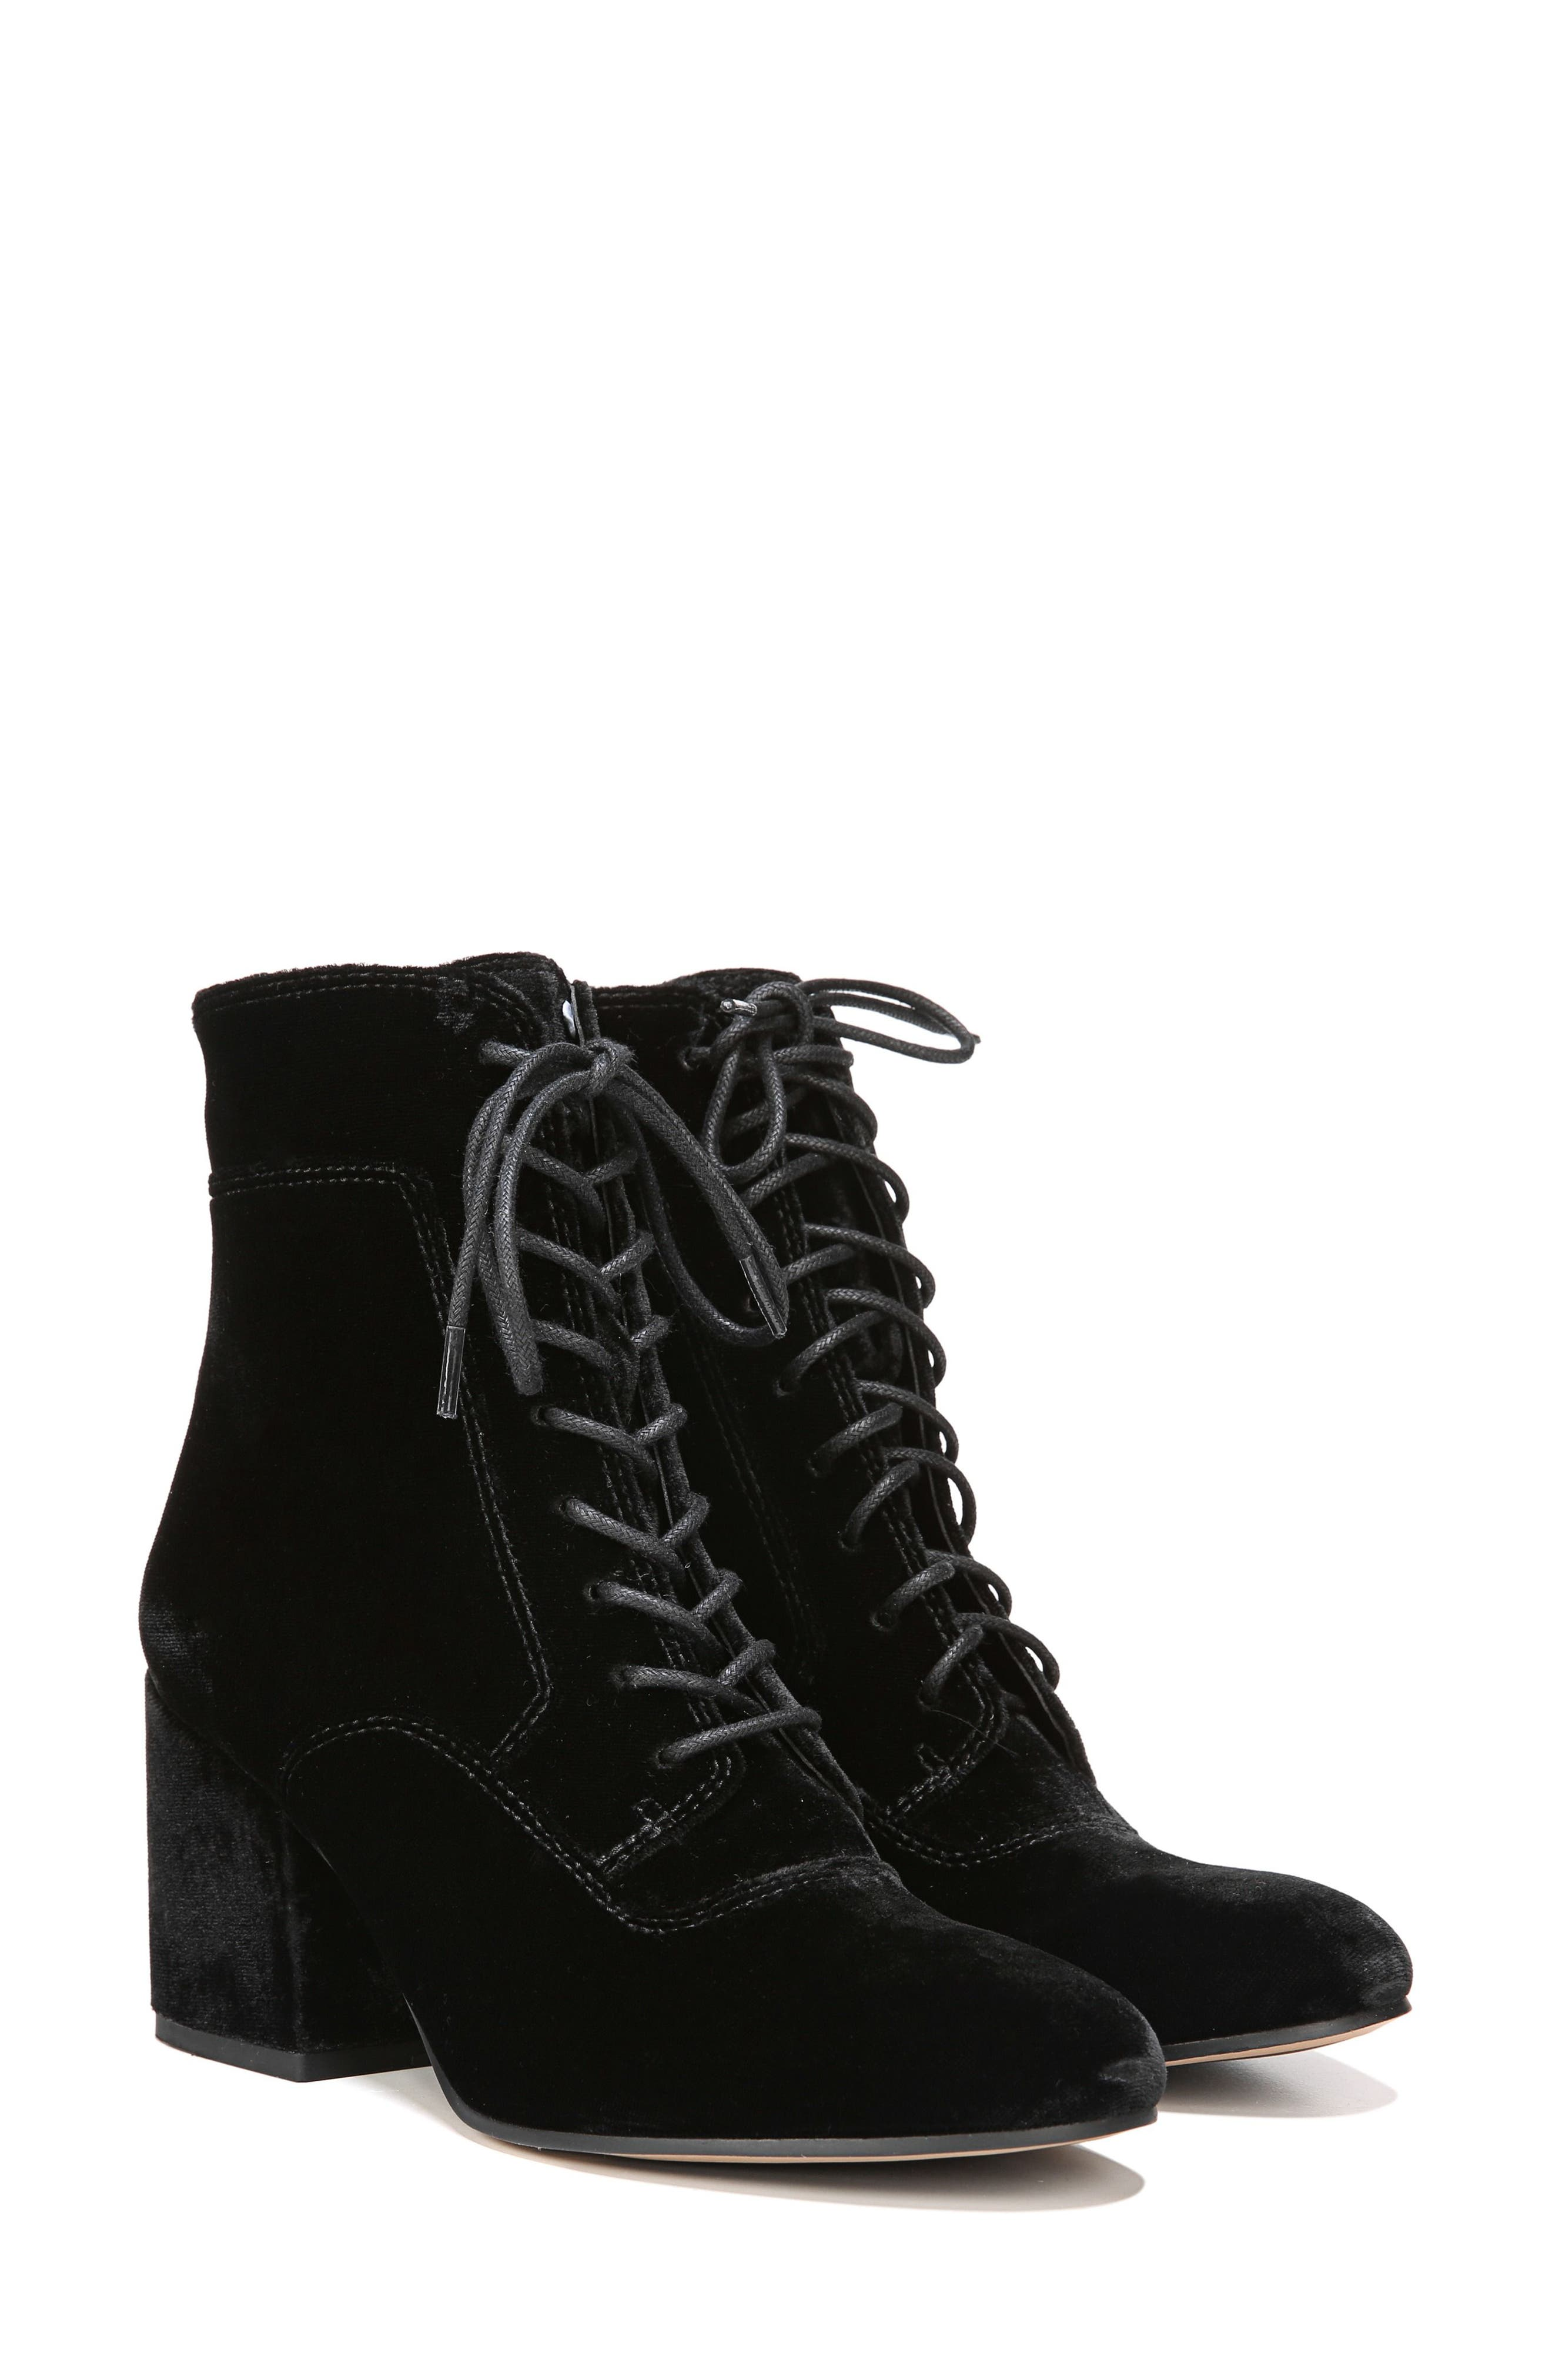 Aldrich Bootie,                             Alternate thumbnail 8, color,                             001